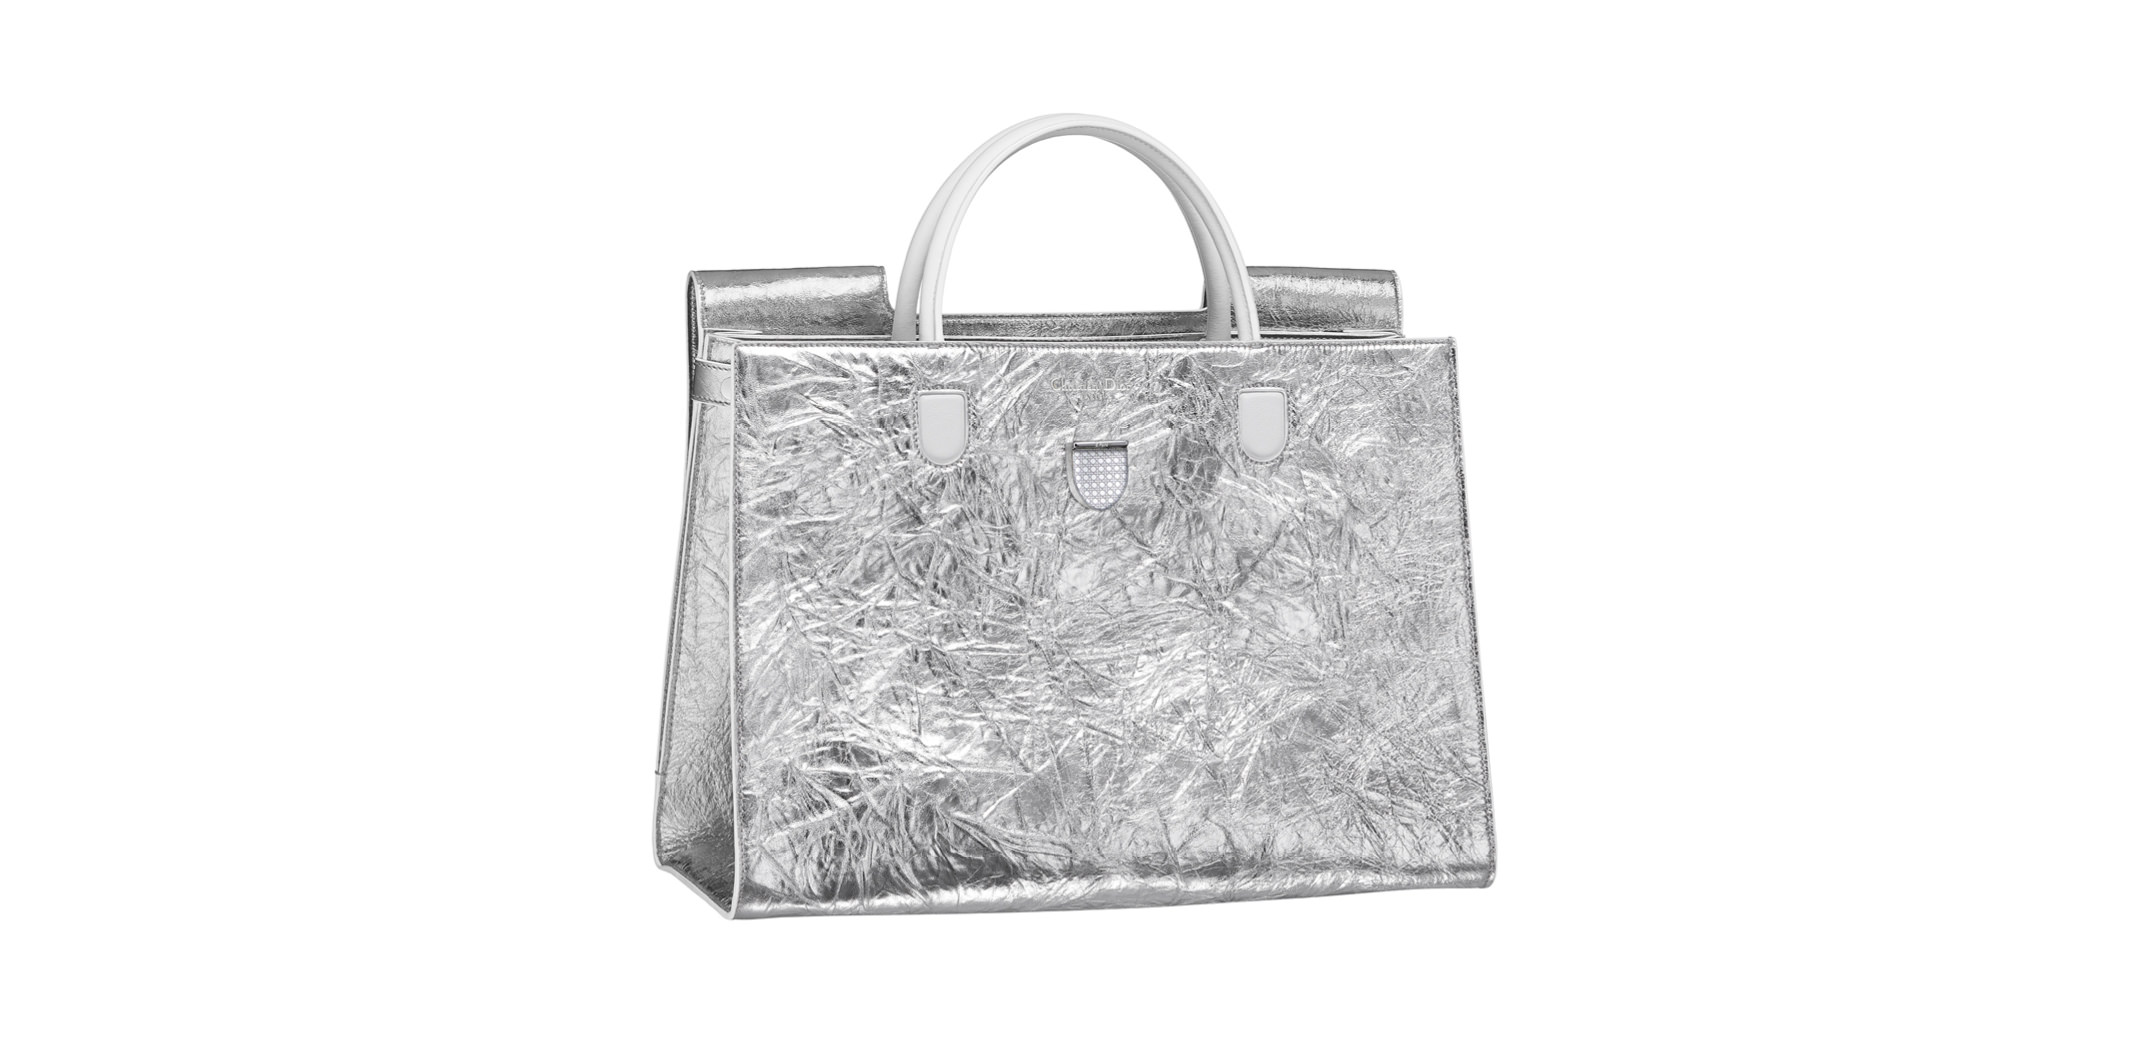 Diorever cracked lambskin silver leather bag, DIOR.